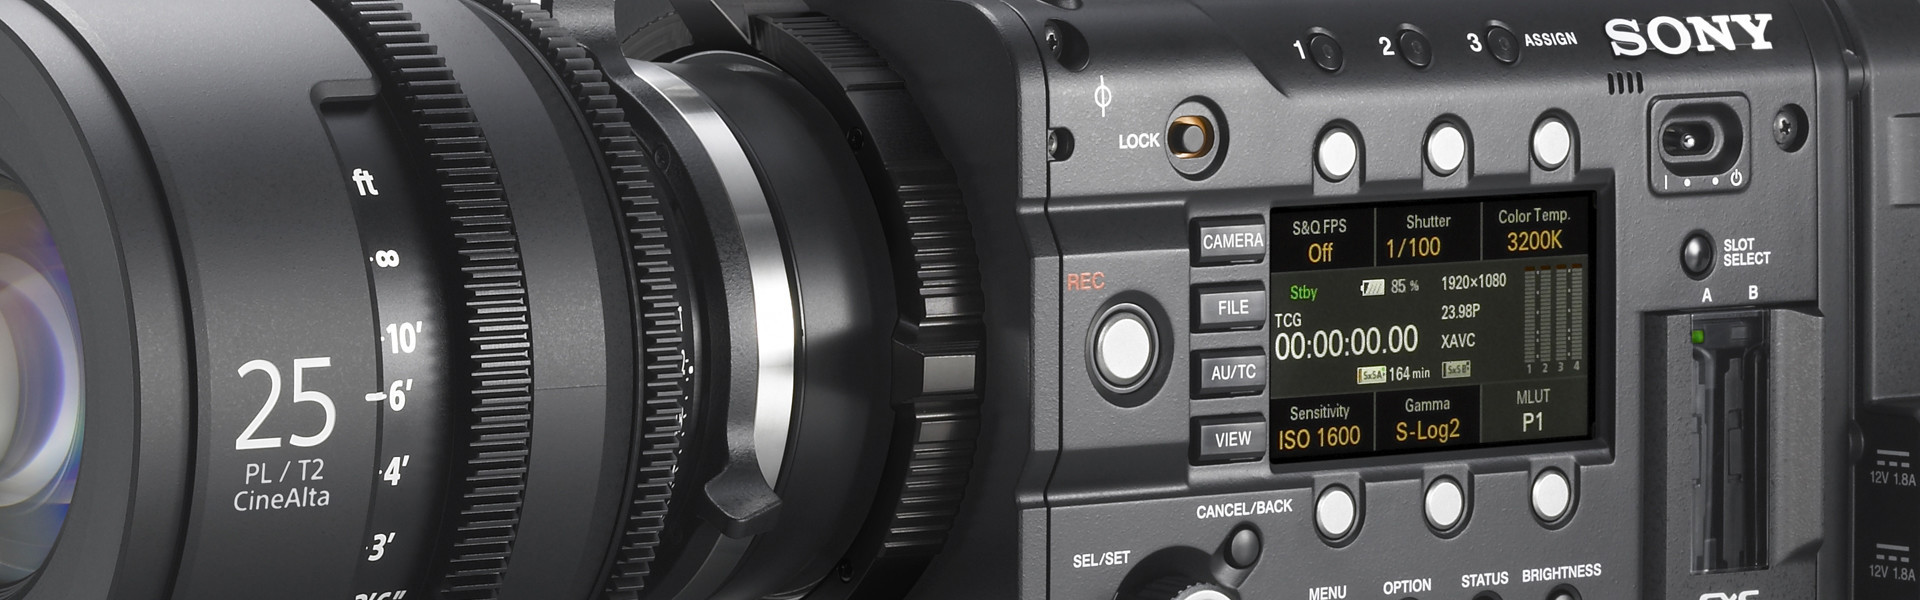 Header image for article Quick Tip: Using the OptiTek Mark II Adapter with Sony F5/F55